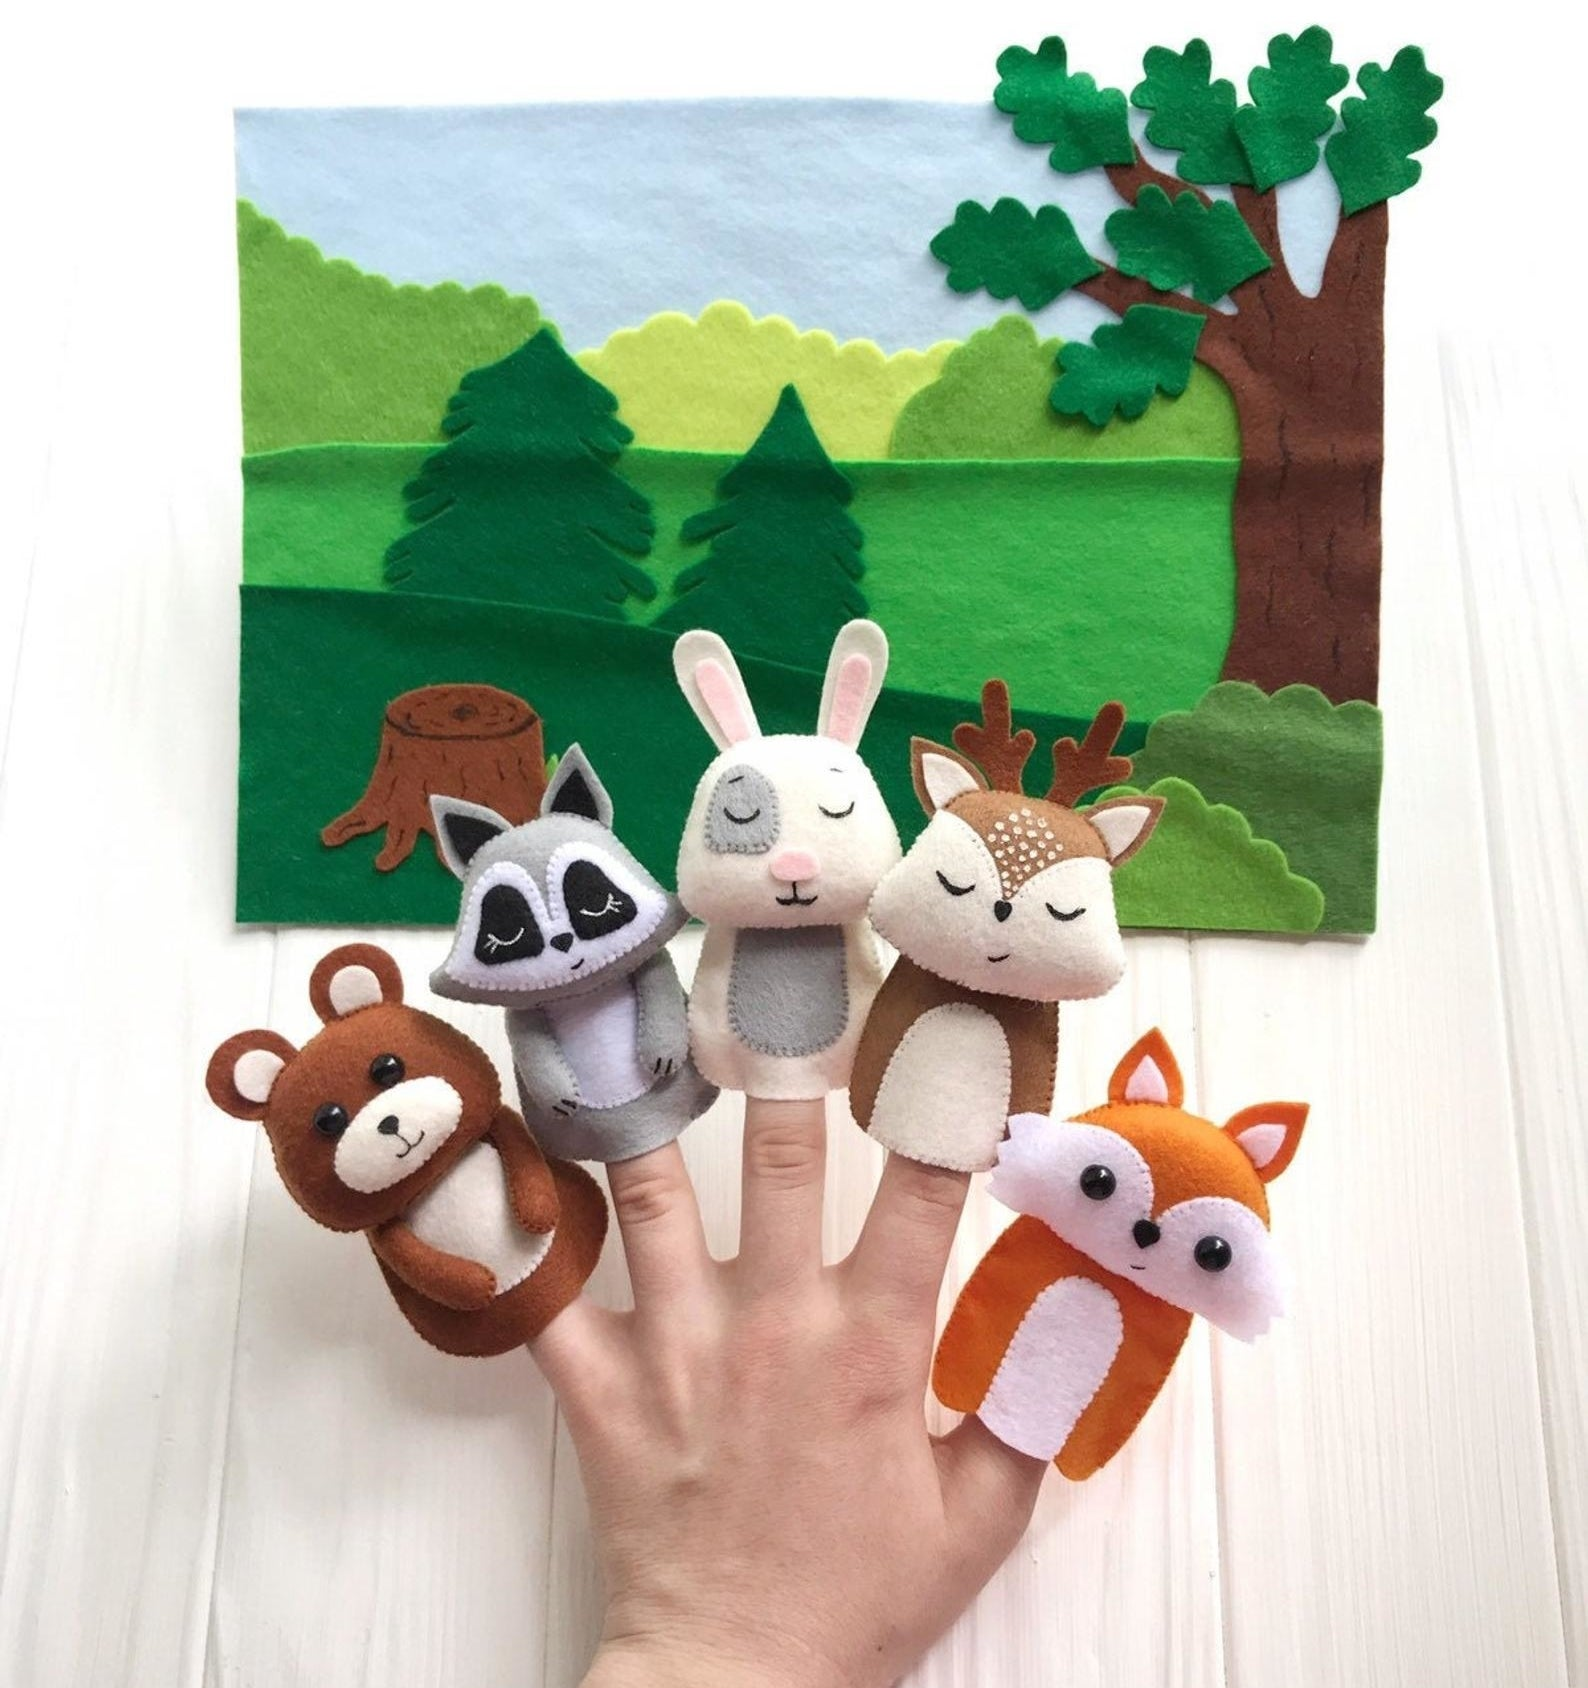 Model's hand with five different felt animal finger puppets on each finger